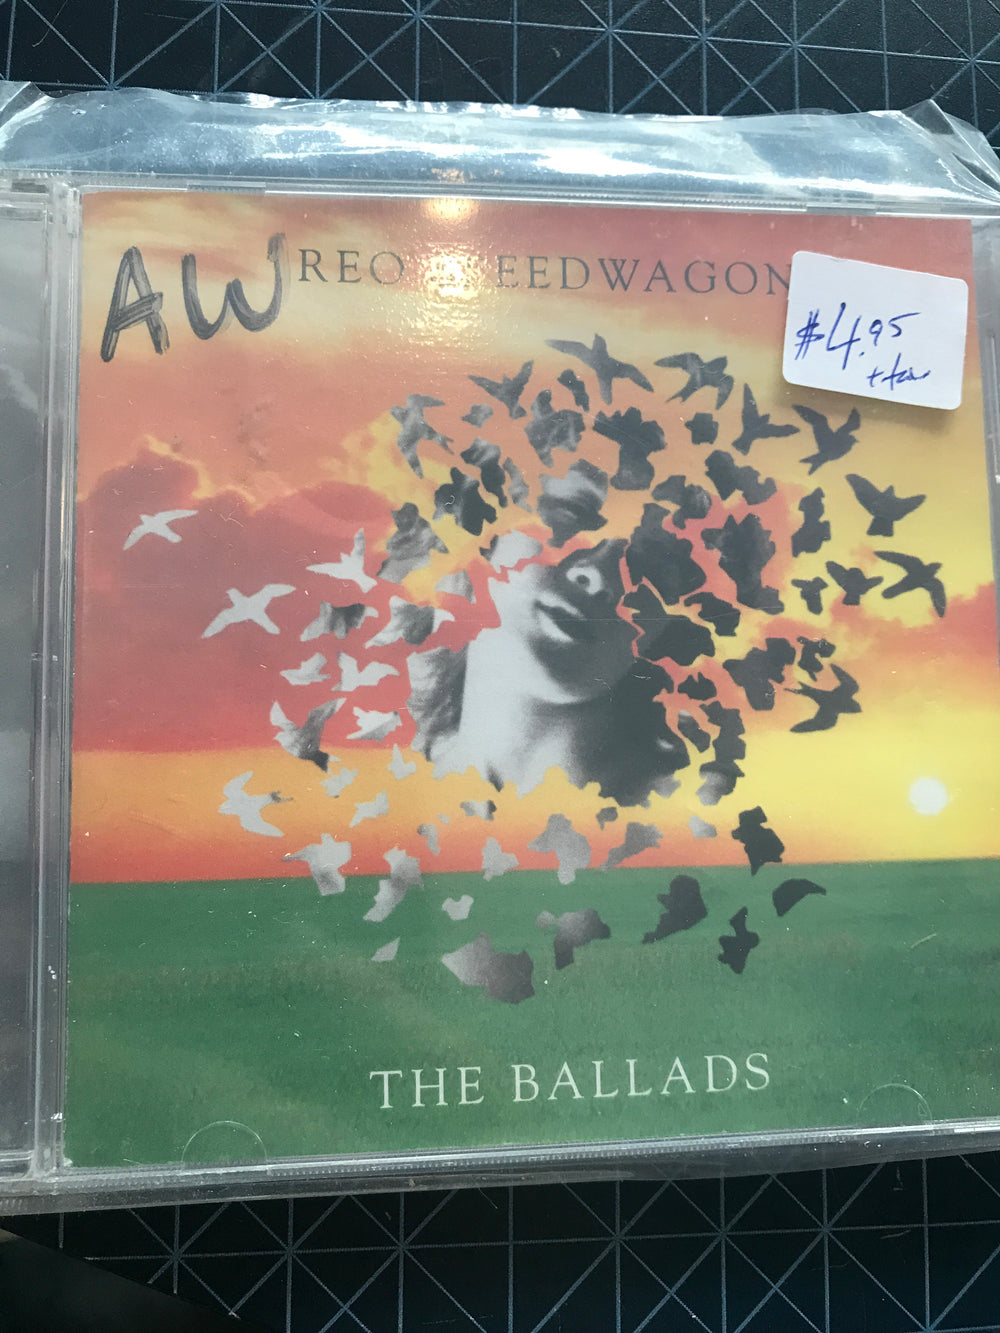 REO Speedwagon - The Ballads - Used CD